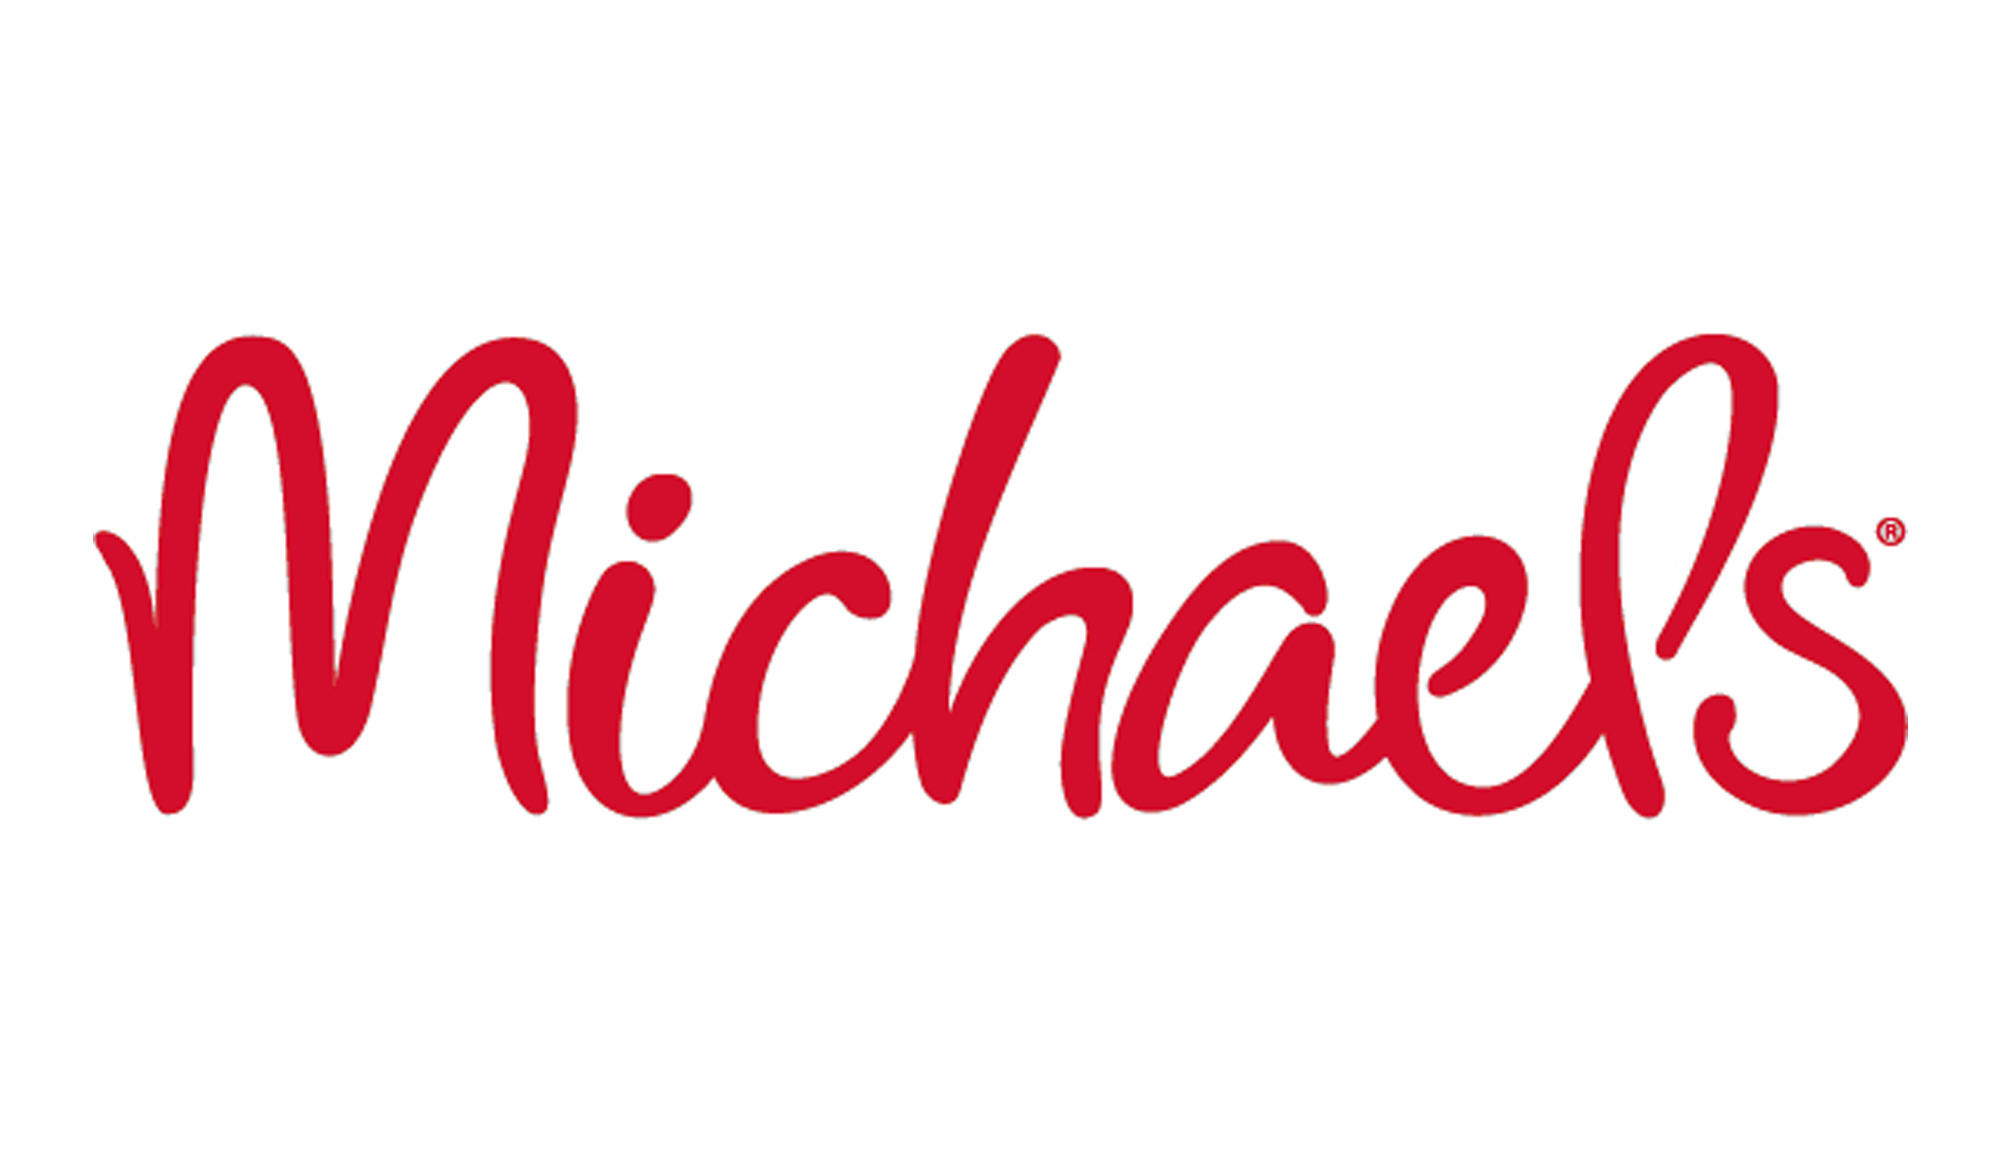 Michaels arts and crafts store logo